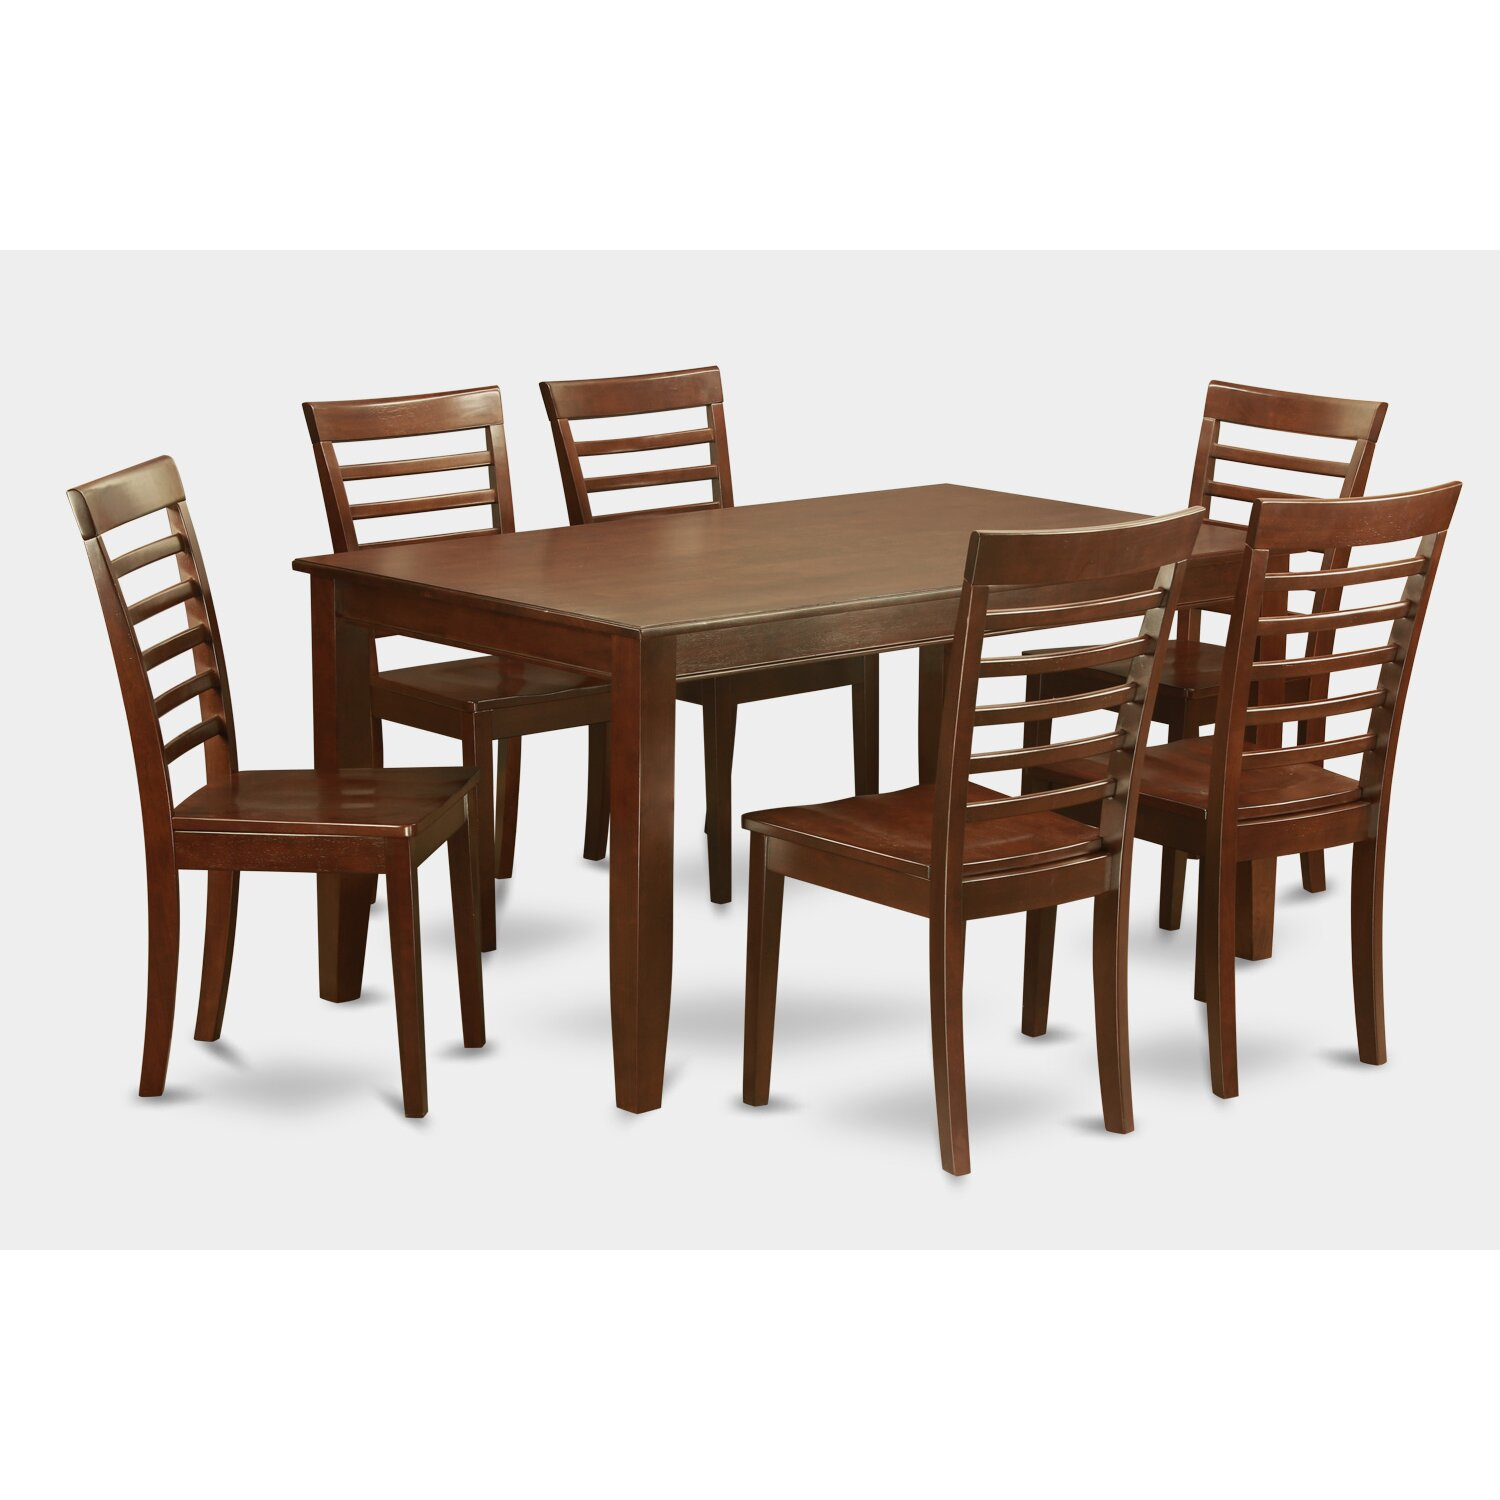 Wooden Importers Dudley 7 Piece Dining Set & Reviews